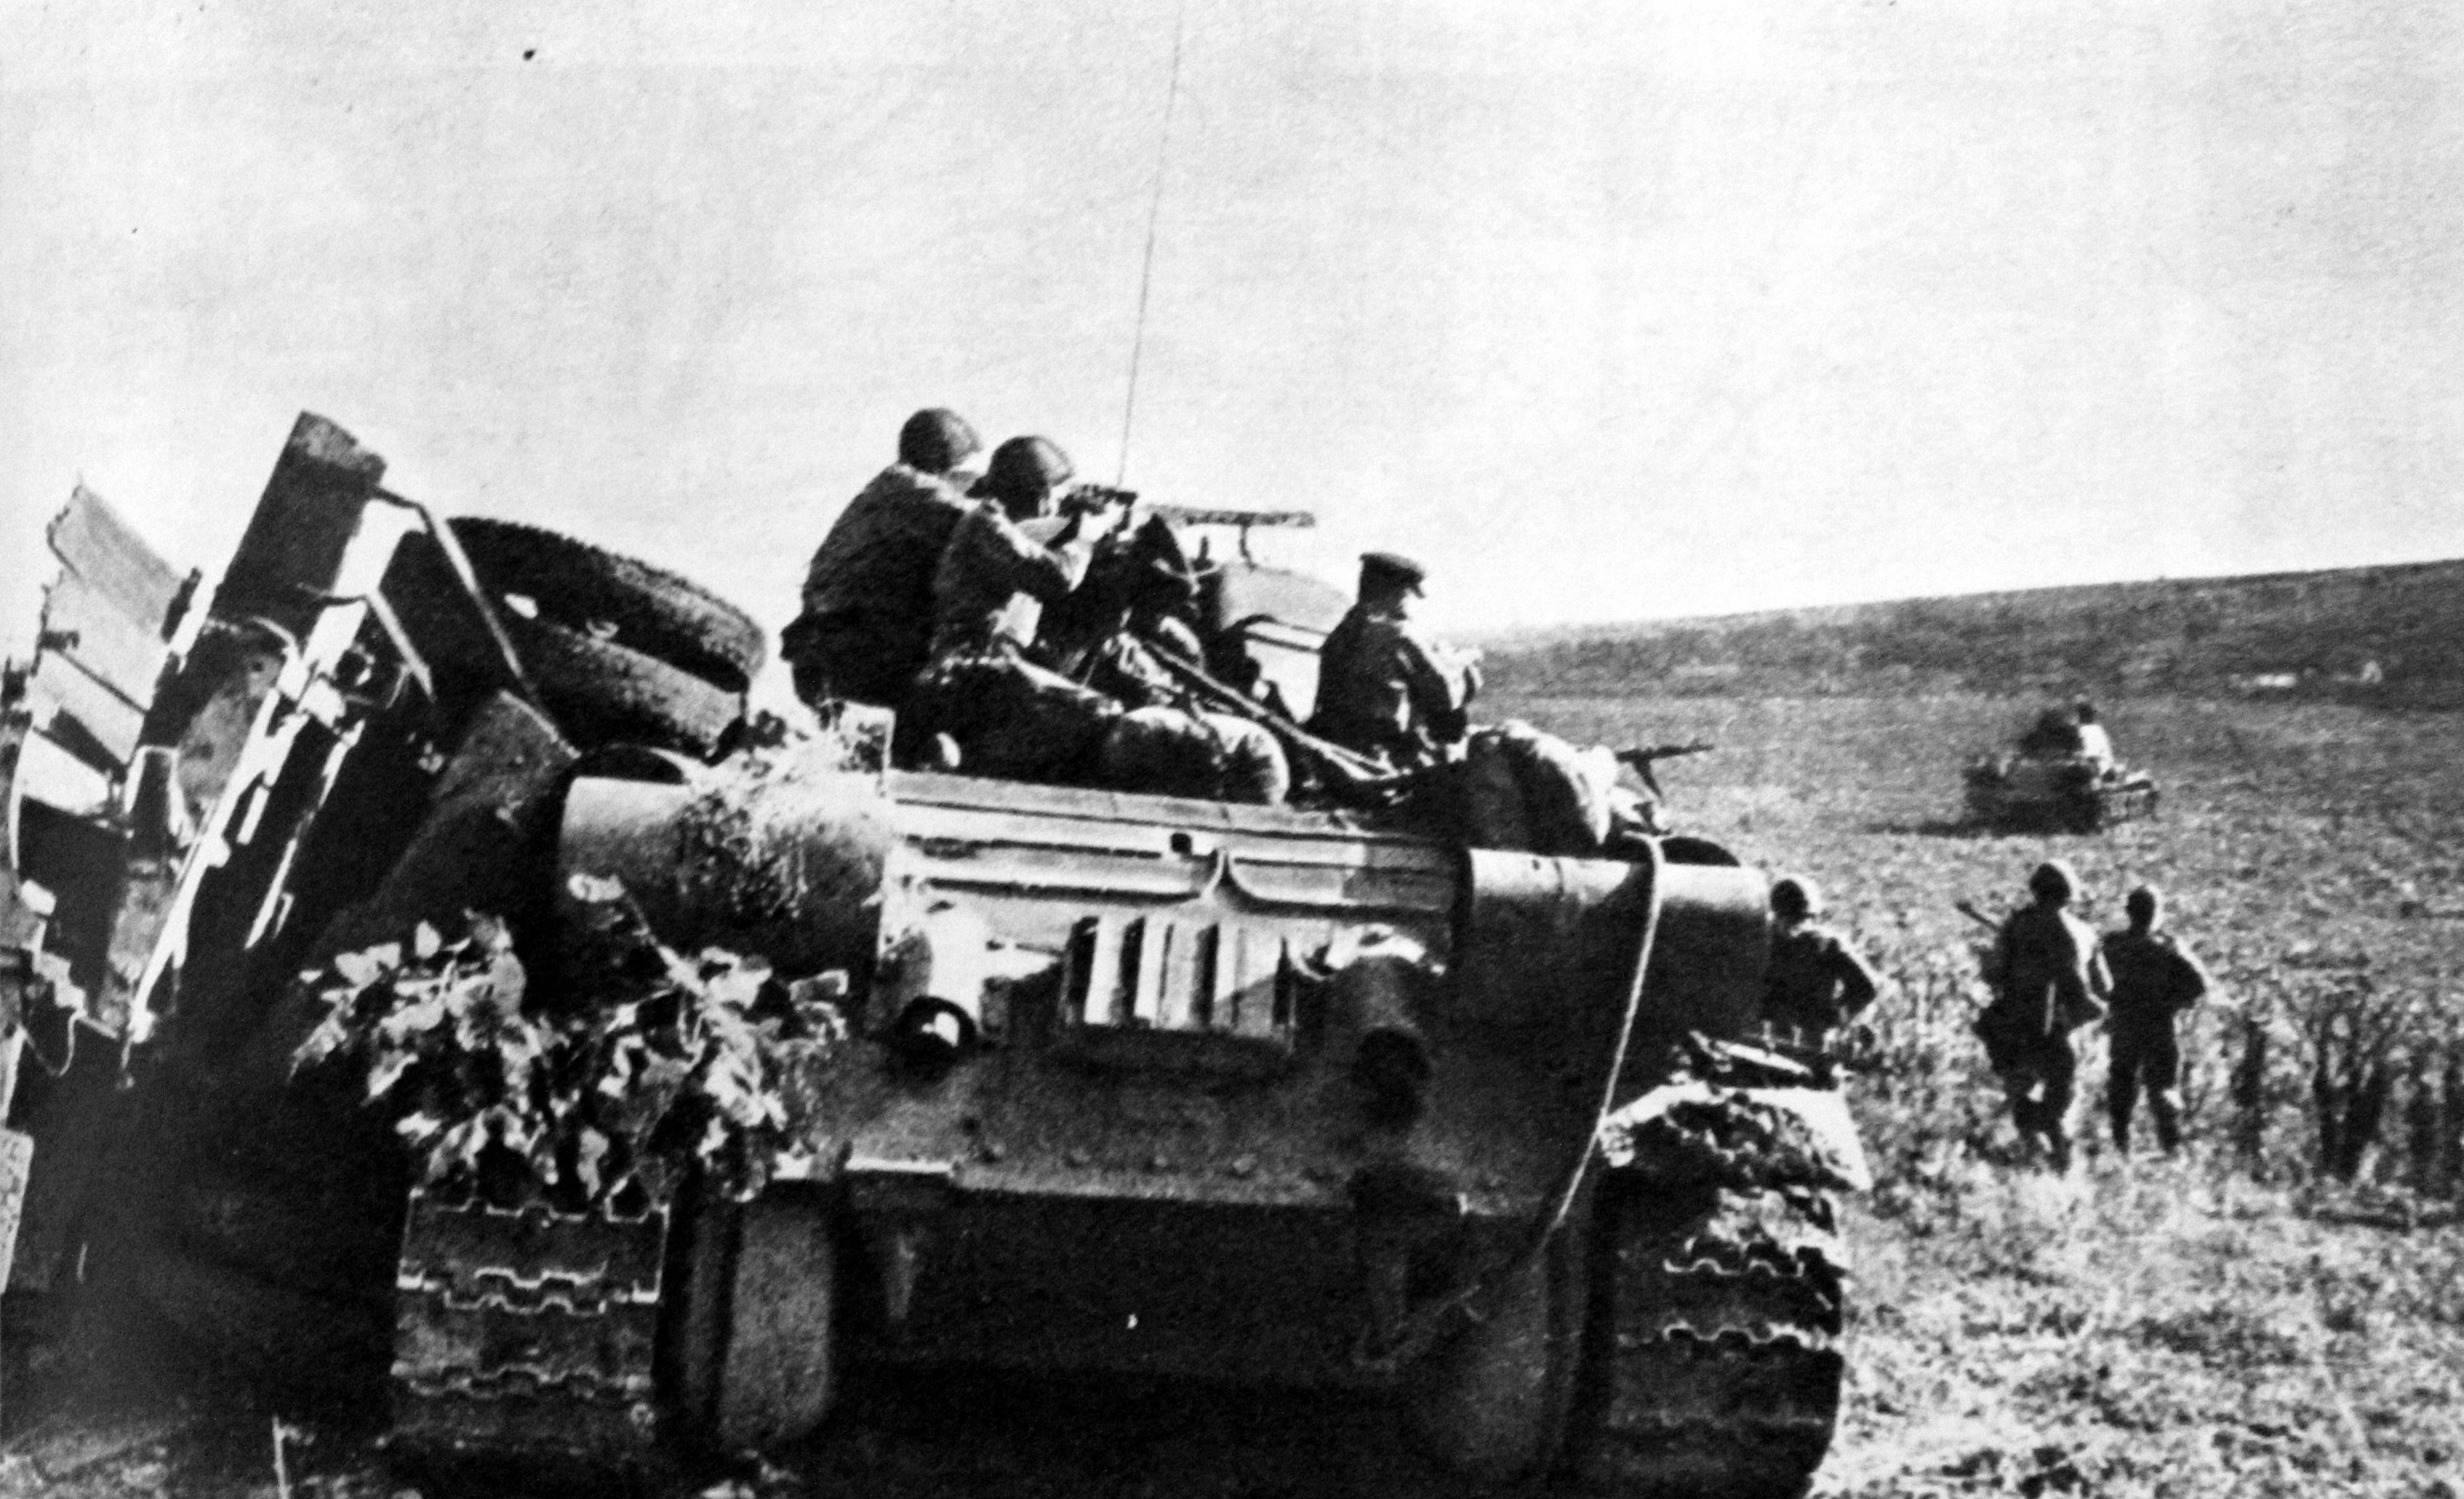 Pin by Emil Ashworth on WWII Pics. | Soviet troops